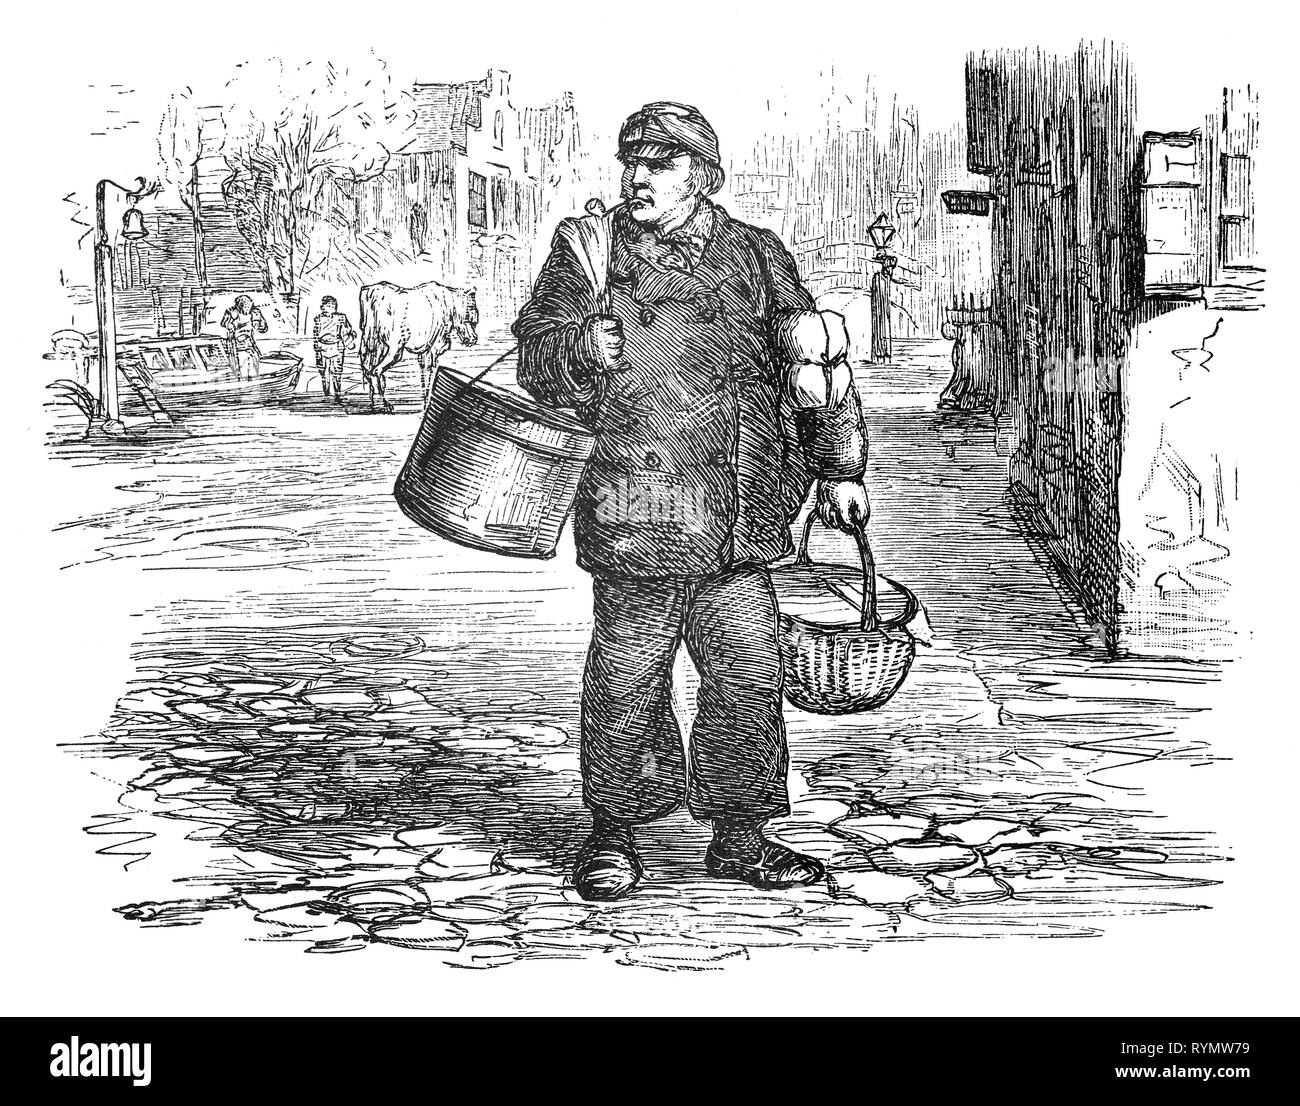 The skipper of a tow barge, with lunch in hand, makes his way to the river moorings. From the Camera Obscura, a 19th Century collection of Dutch humorous-realistic essays, stories and sketches in which Hildebrand, the author, takes an ironic look at the behavior of the 'well-to-do', finding  them bourgeois and without a good word for them. Stock Photo